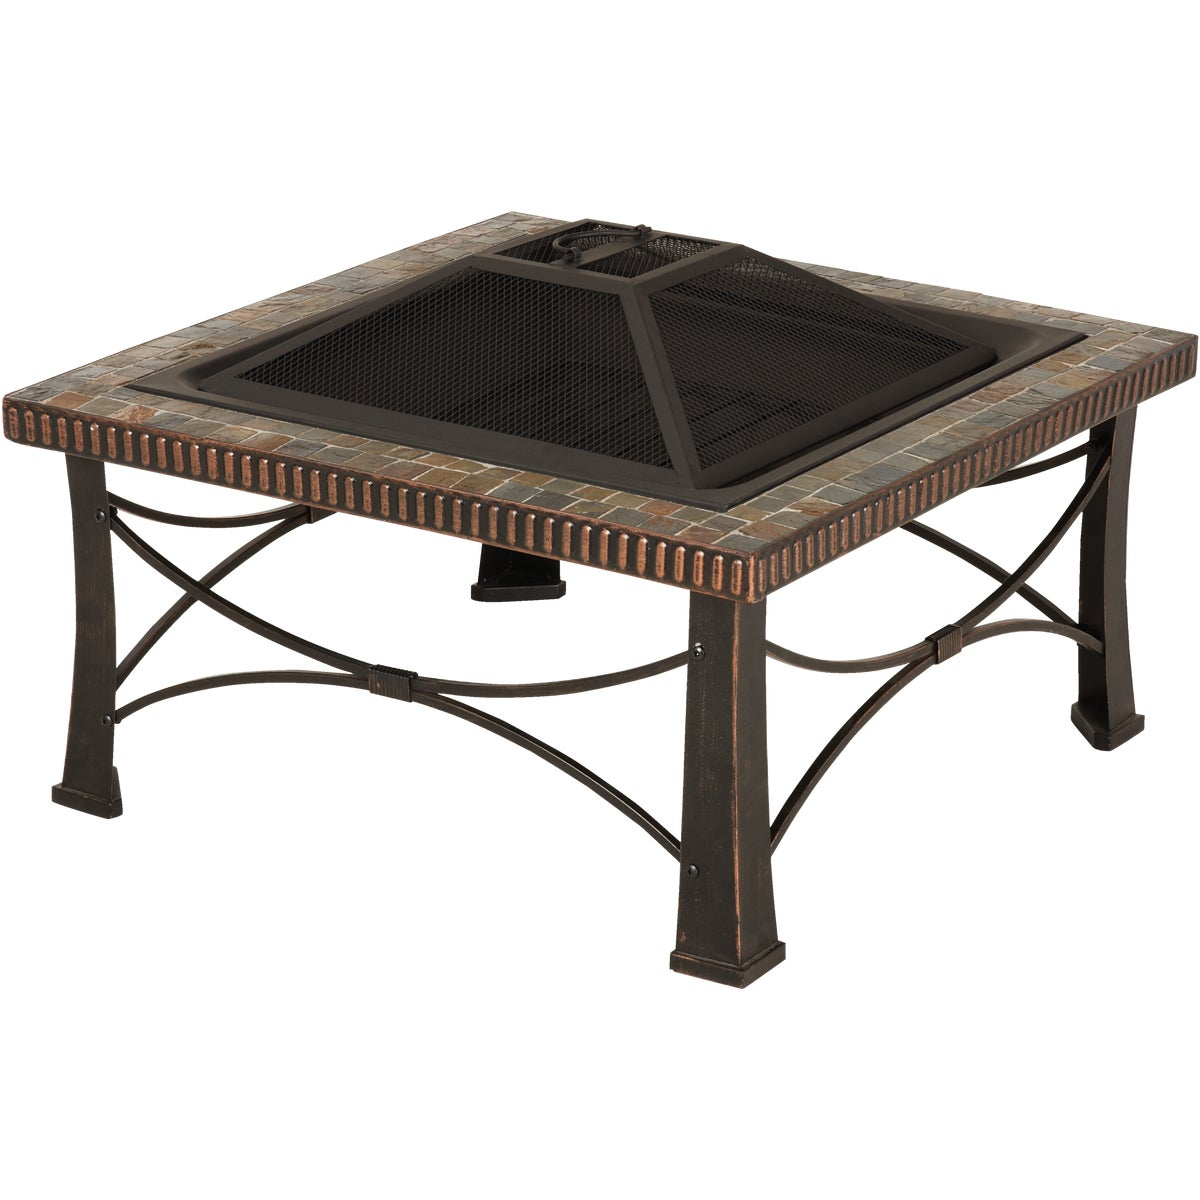 "30"" SQUARE FIRE PIT - FTB-013SB by Do it Best"